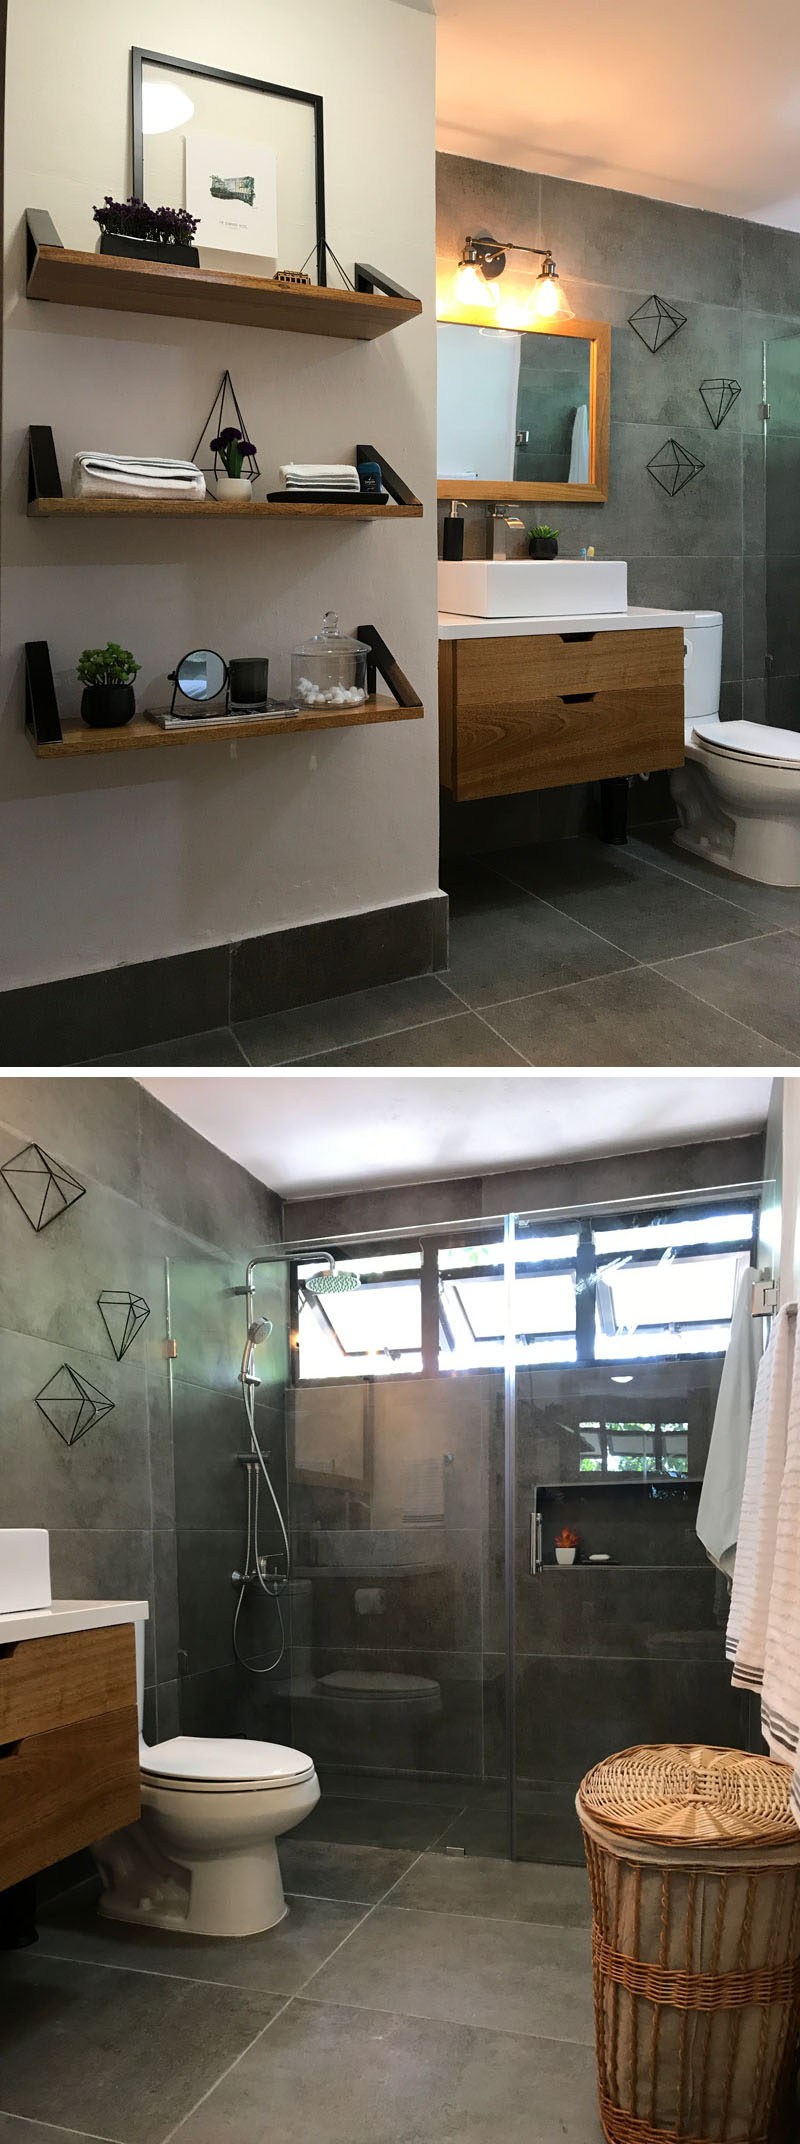 This modern renovated bathroom features concrete looking porcelain tiles in a large, rectangular format. The designer combined the tiles with natural wood tones to give the bathroom a modern touch, while achieving a calm color palette and overall feeling.  #DarkGreyBathroom #ModernBathroom #RenovatedBathroom